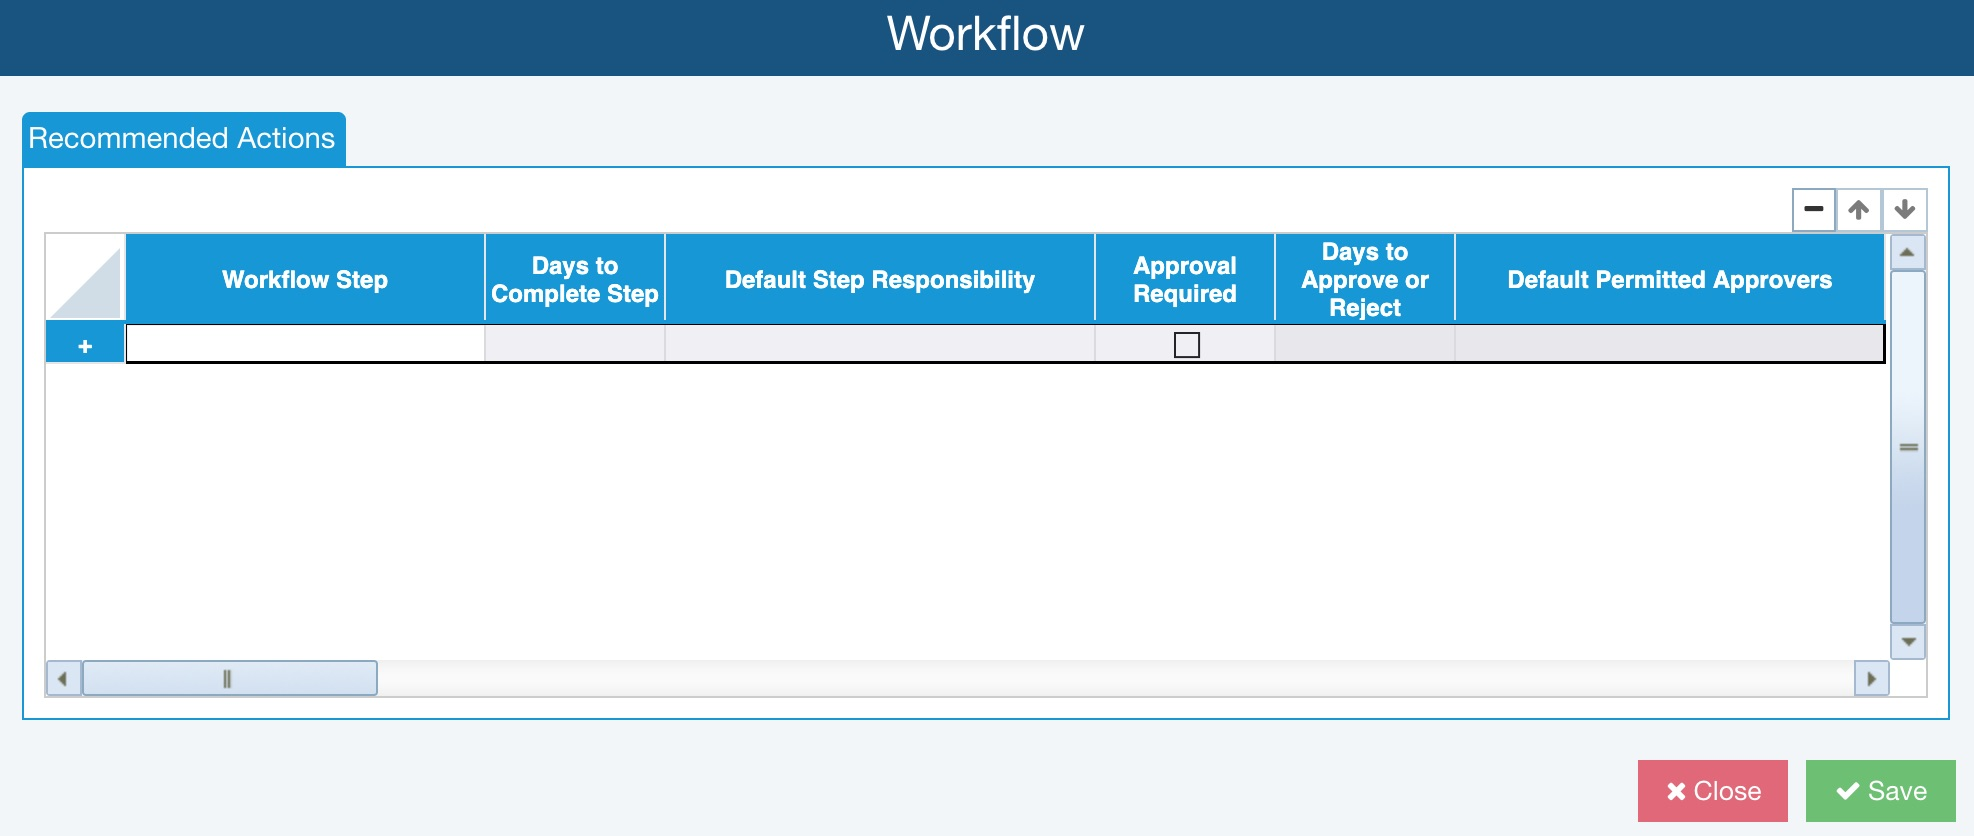 FMEA Workflow and Approvals